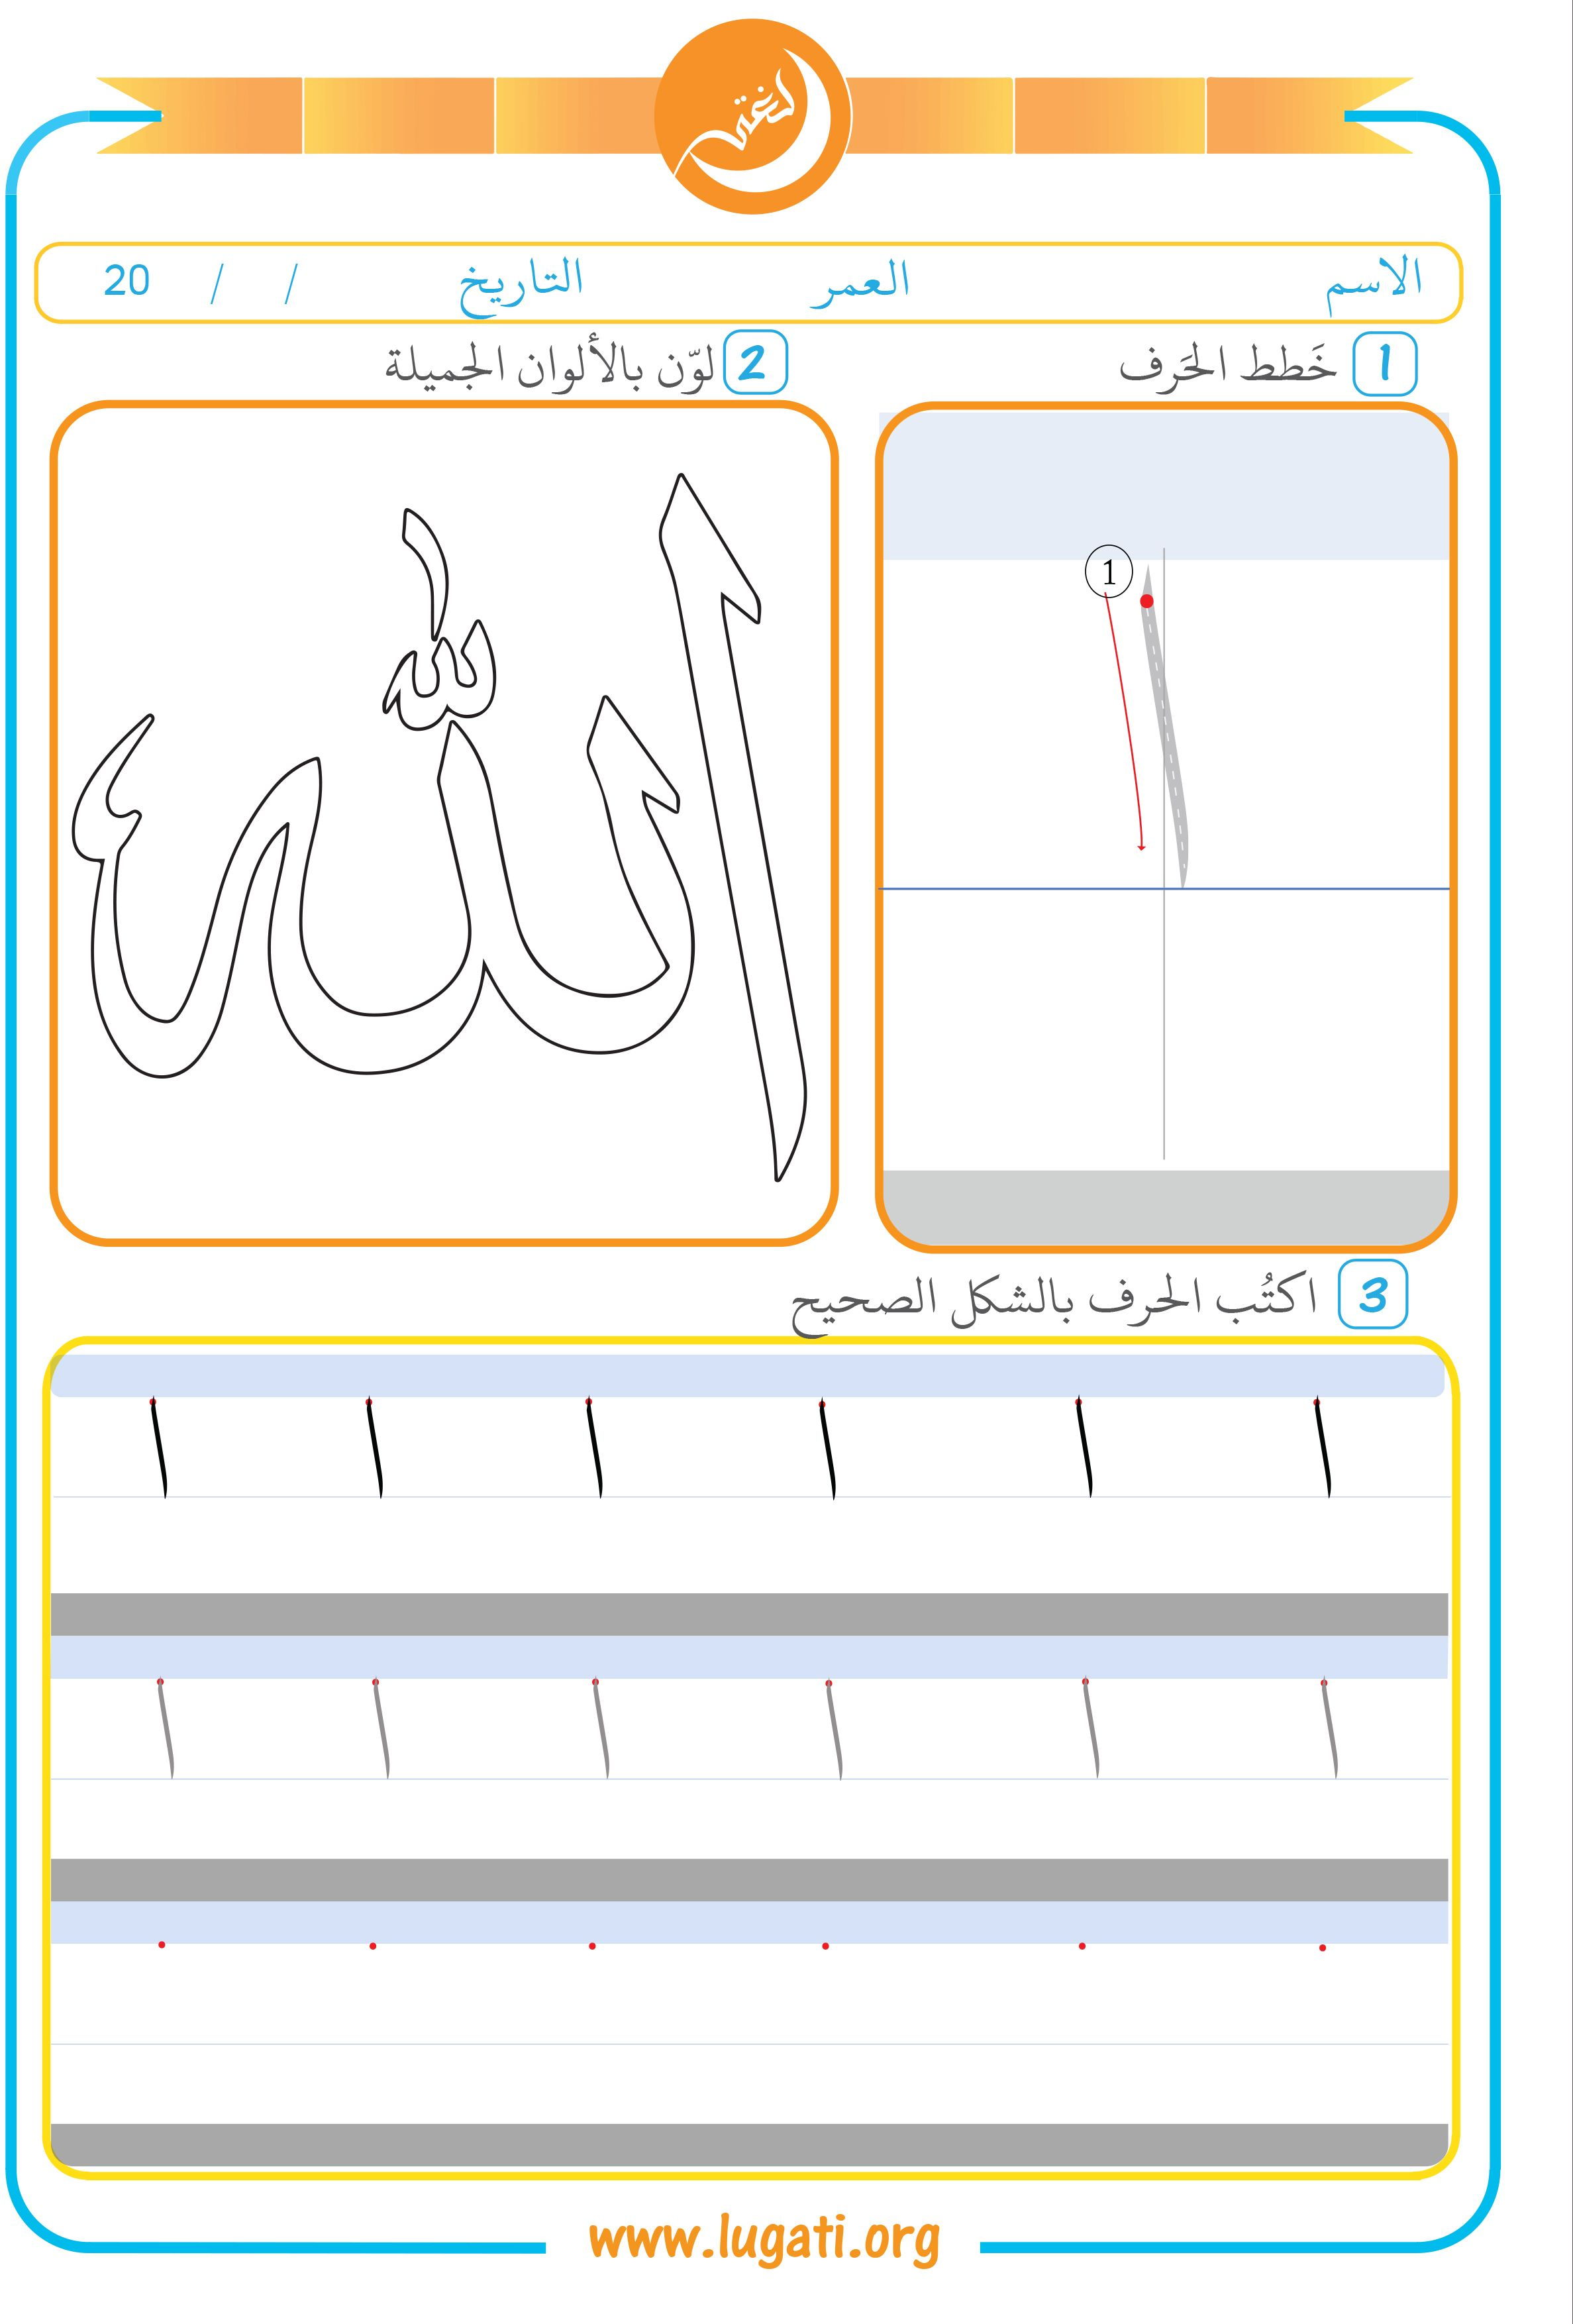 Level 1 This Arabic Worksheet Contains Three Exercises For